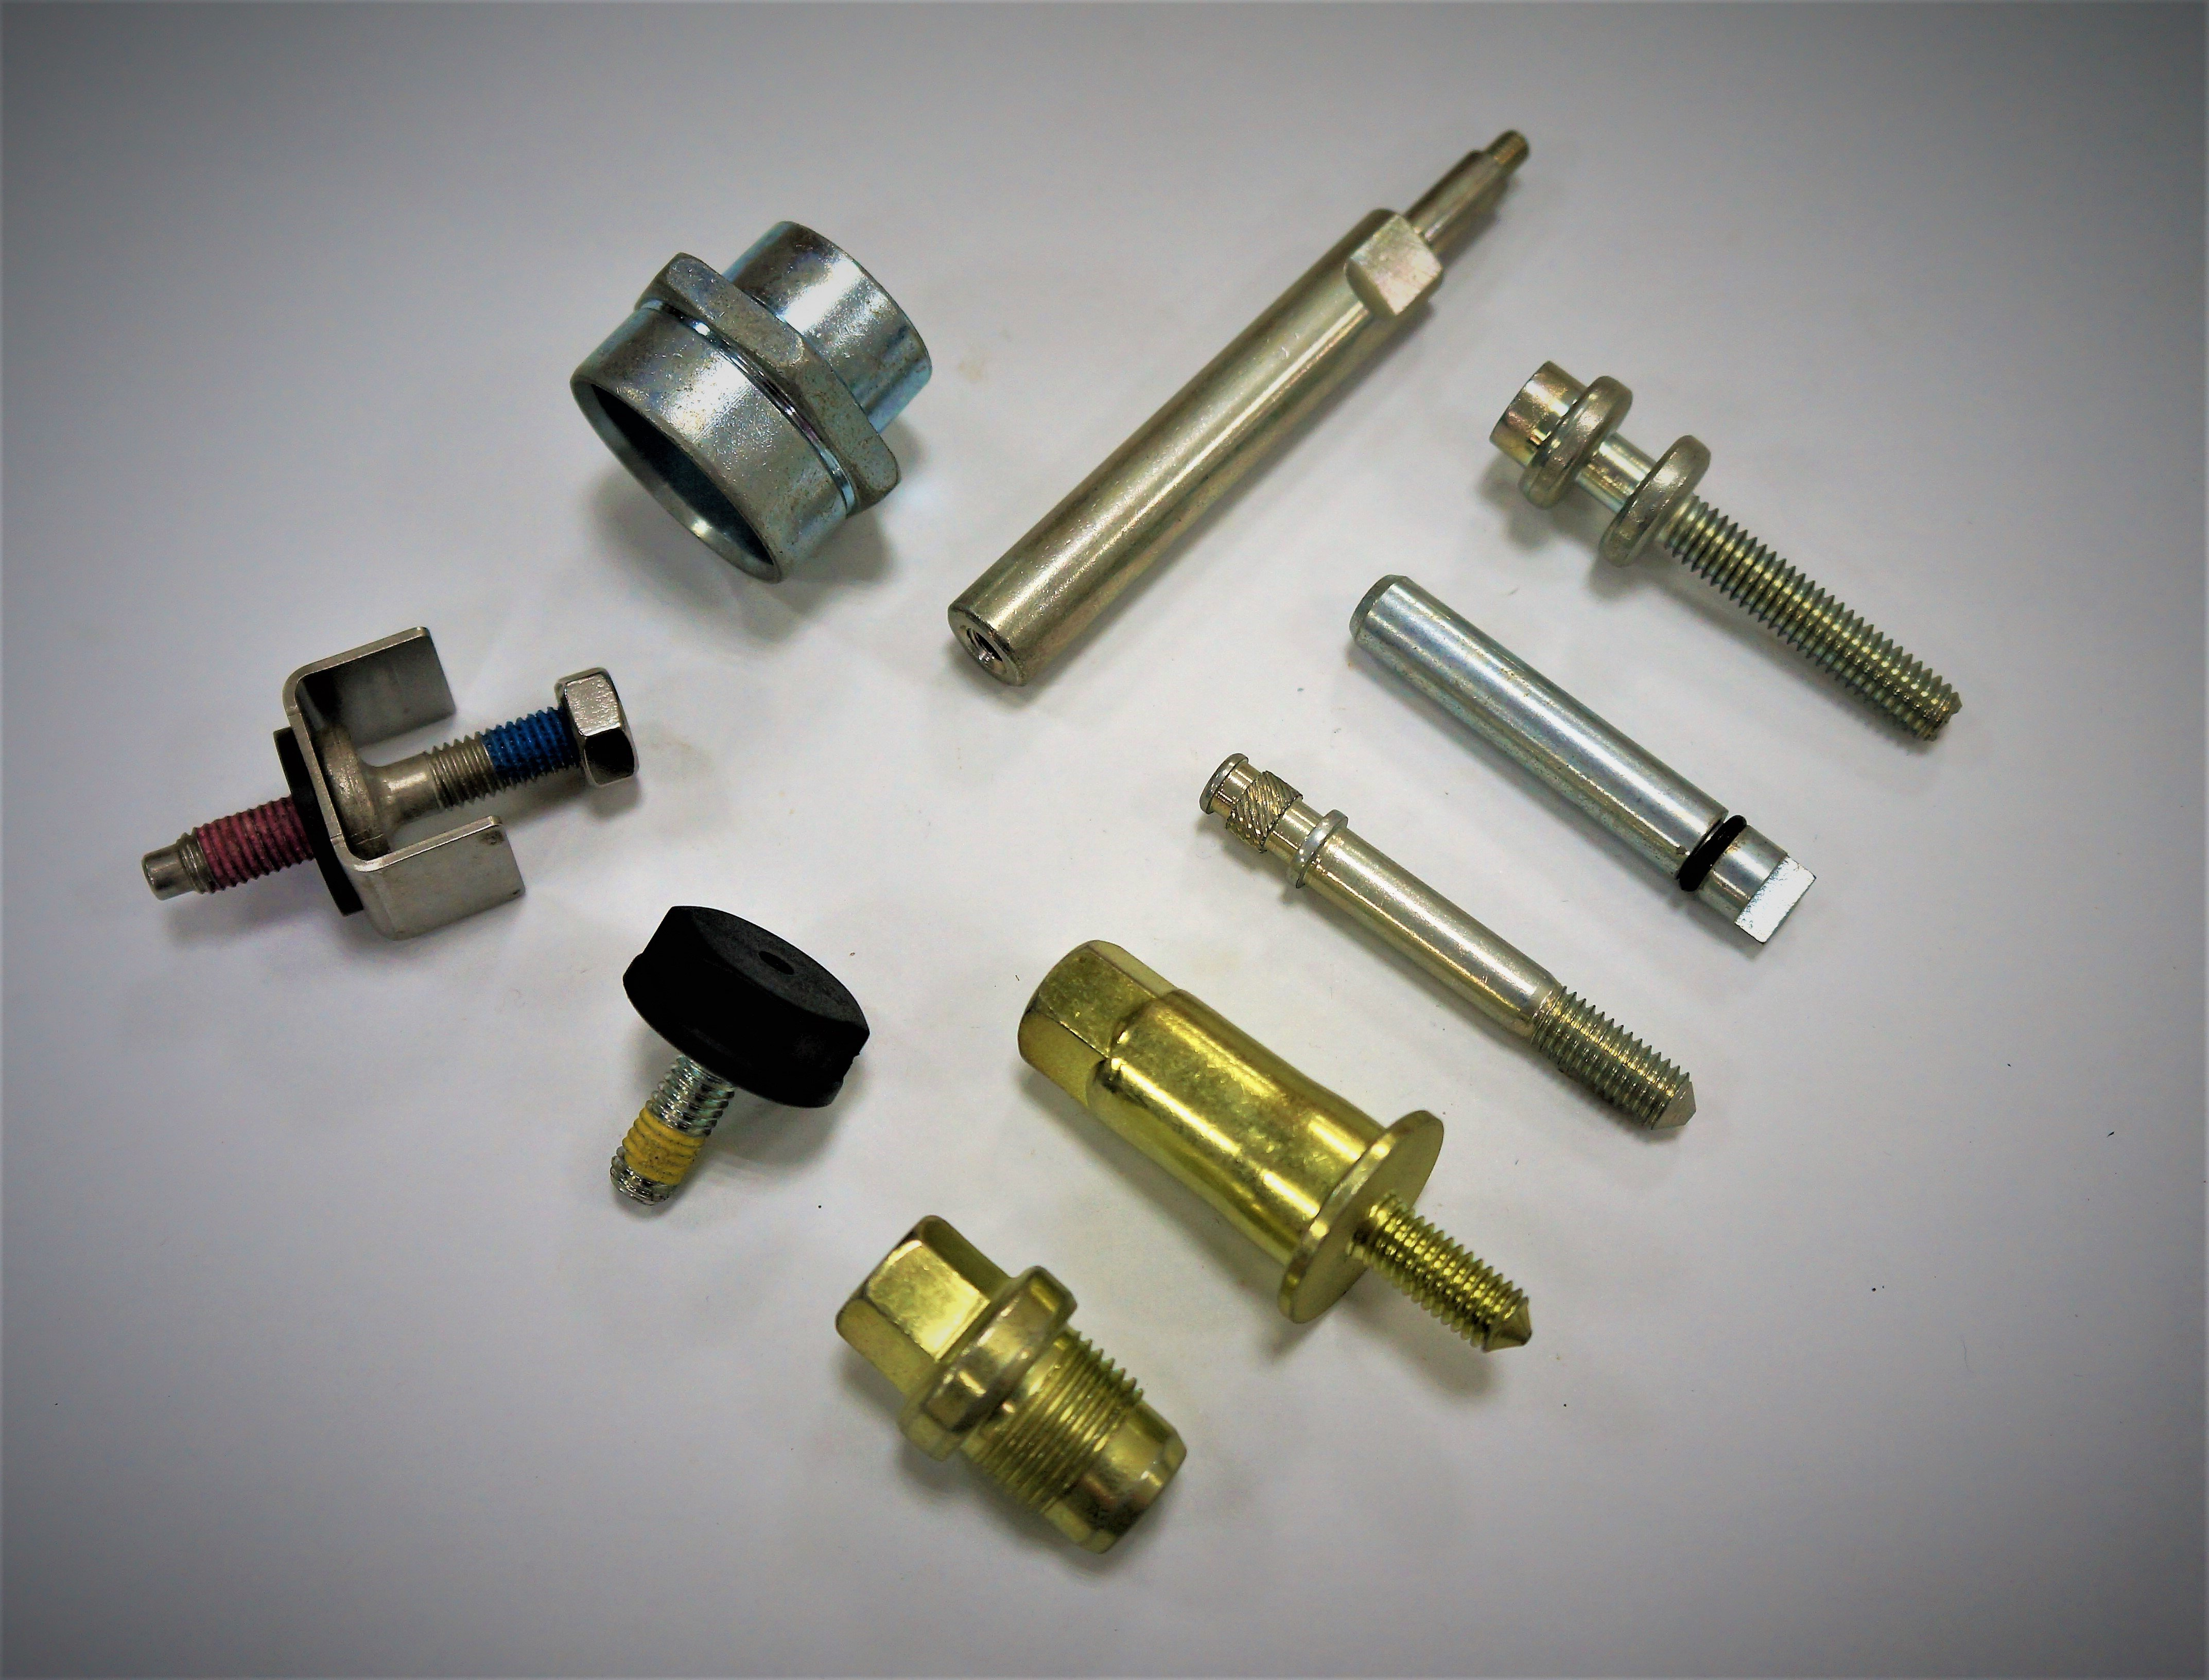 Truck / Trailer / Heavy Duty Special Screw with Nylon for Vehicle Fastener made by Sunny Screw Industry 三能螺栓工業股份有限公司 - MatchSupplier.com